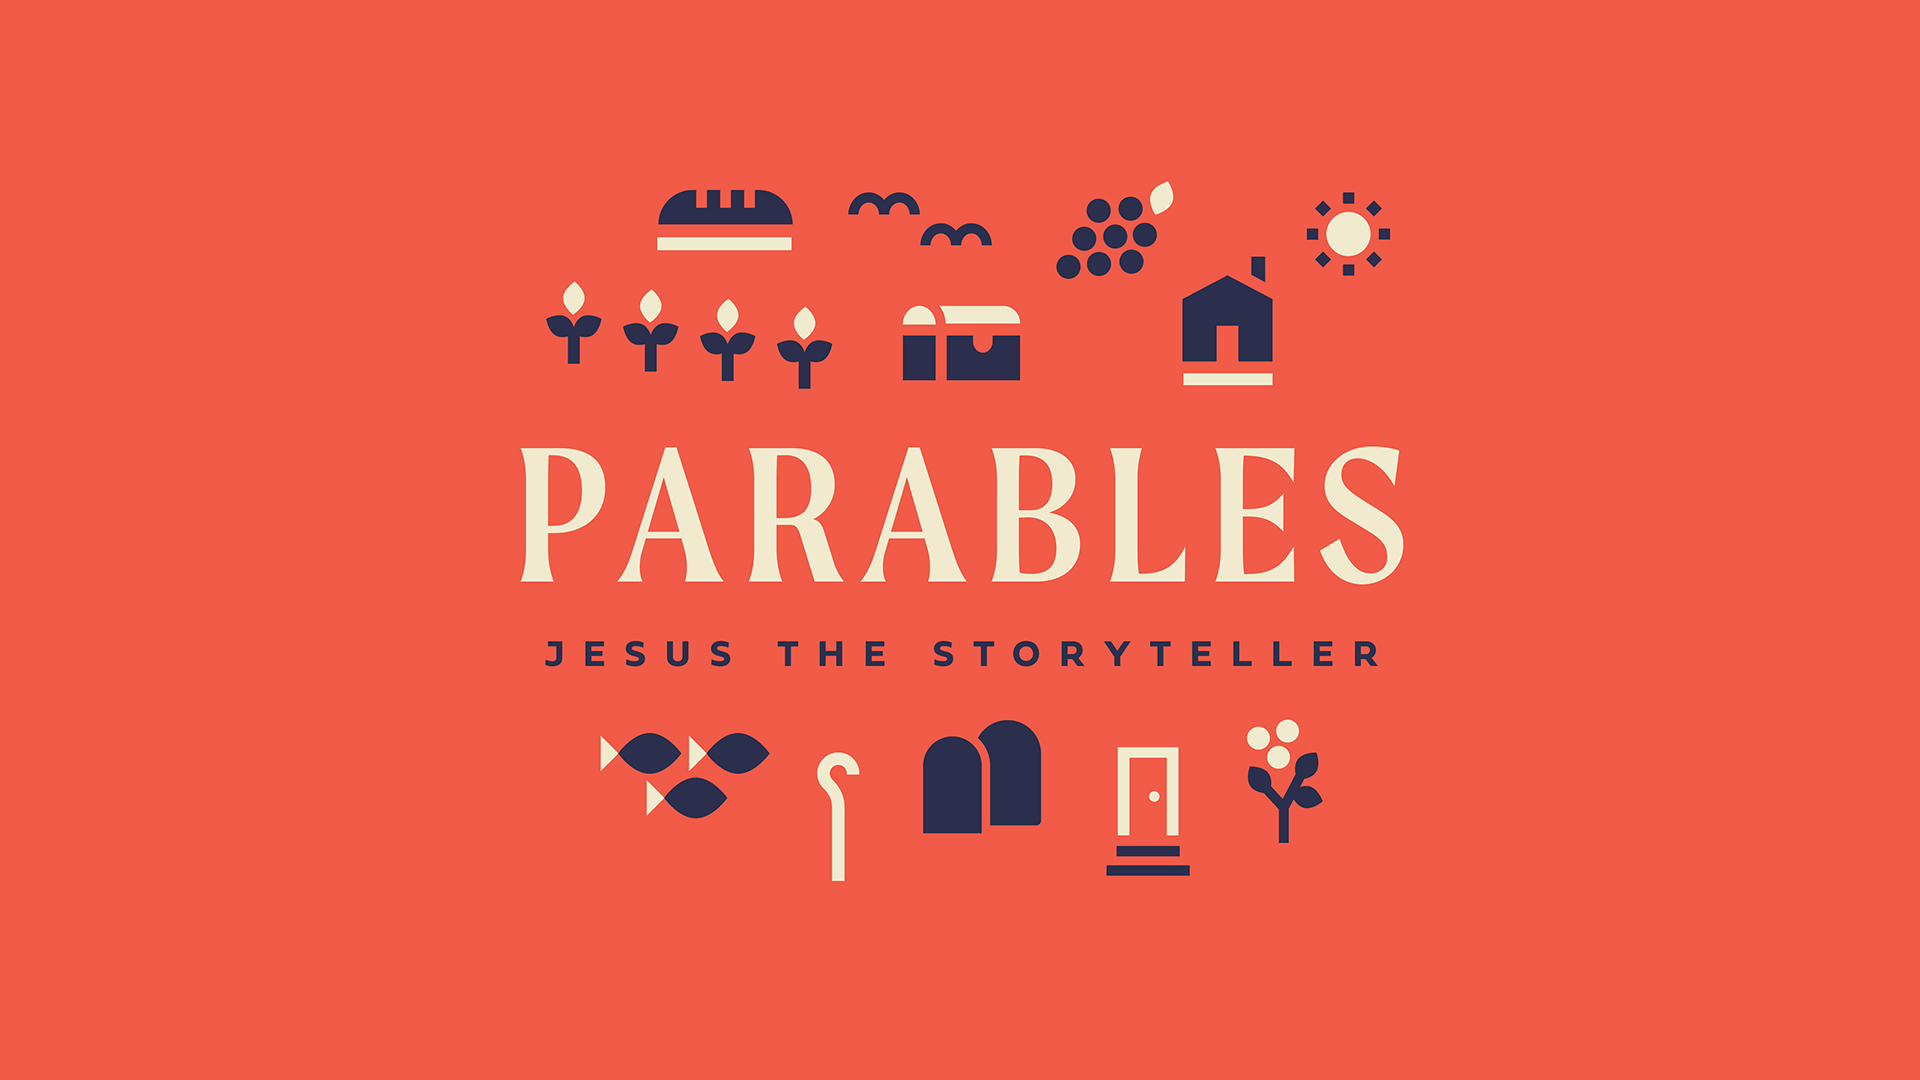 parables-title-1-Wide 16x9